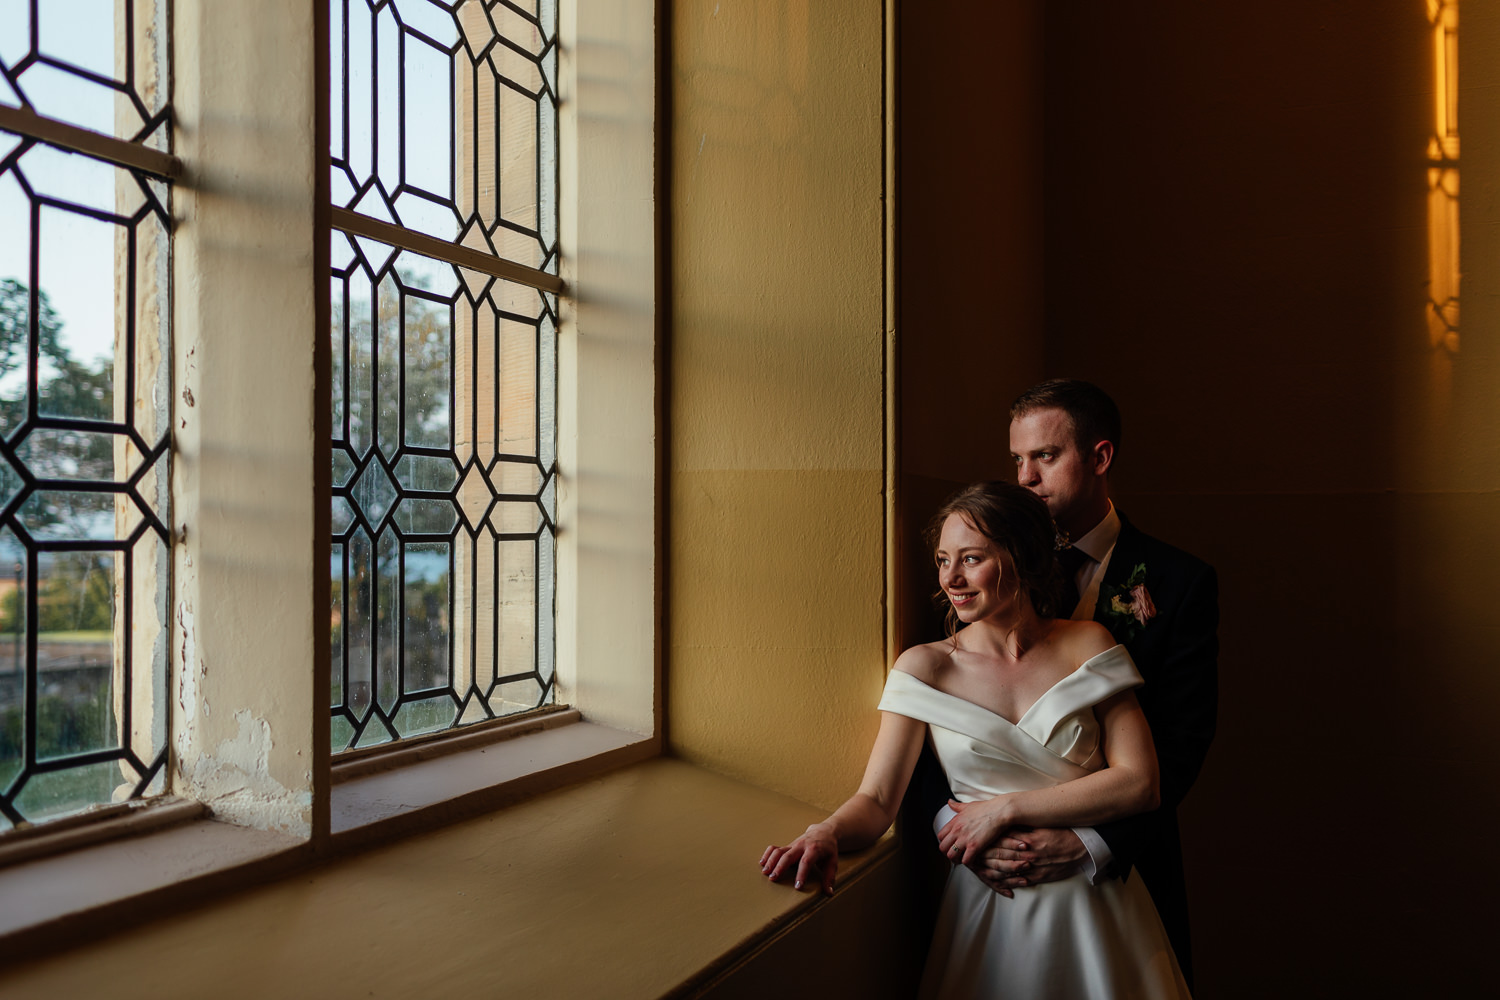 St Andrews Wedding St Salvators Hall Bride Groom Portraits Golden Hour Sunset